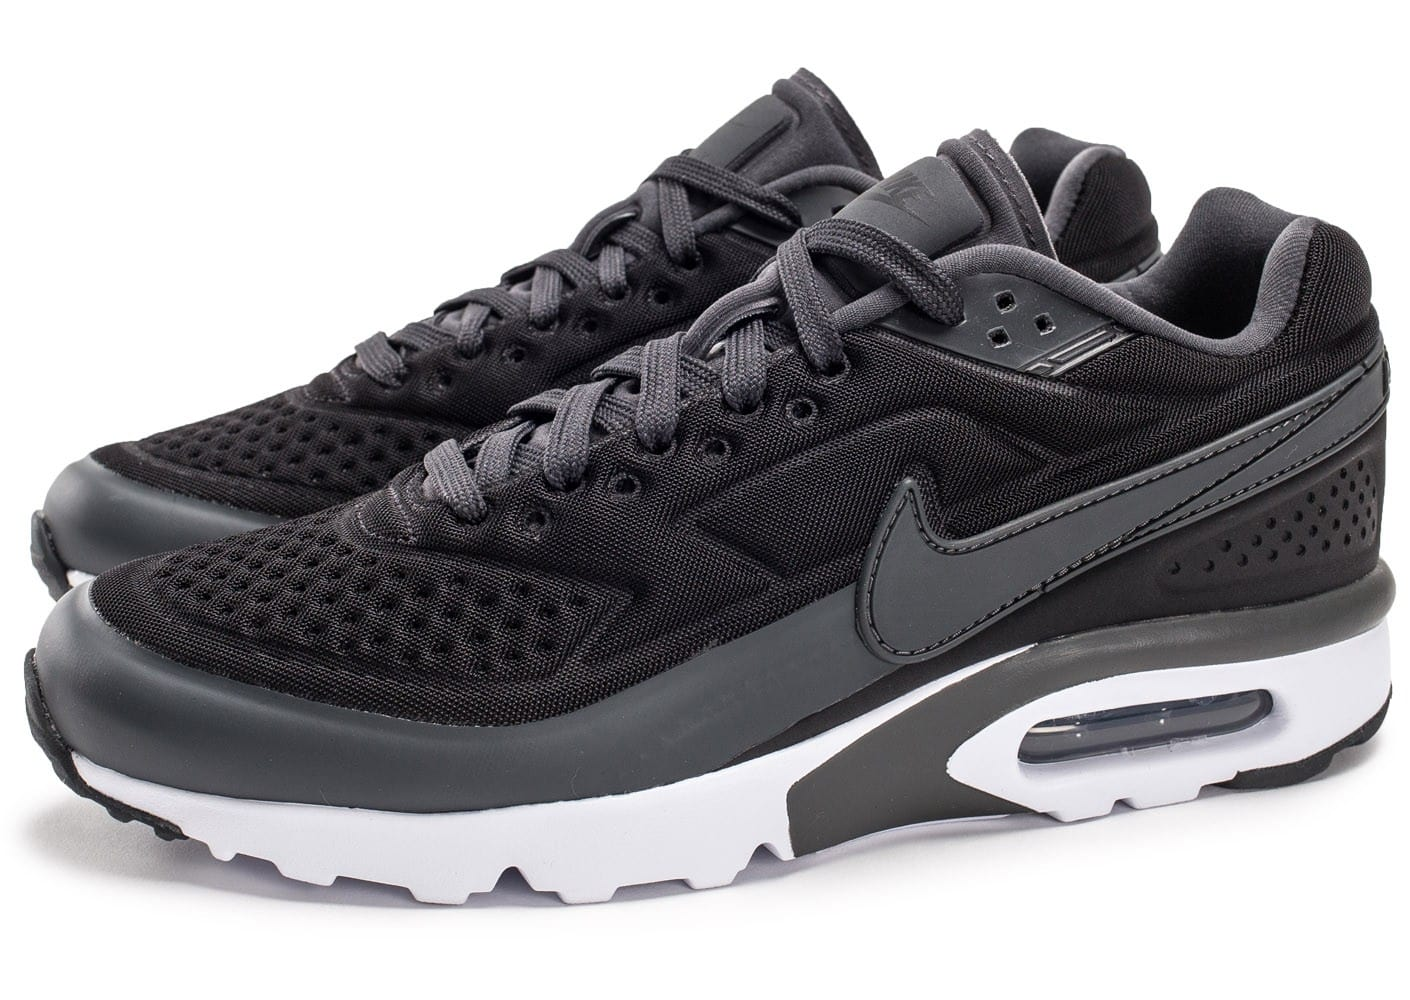 nike air max bw ultra noir anthracite chaussures homme chausport. Black Bedroom Furniture Sets. Home Design Ideas